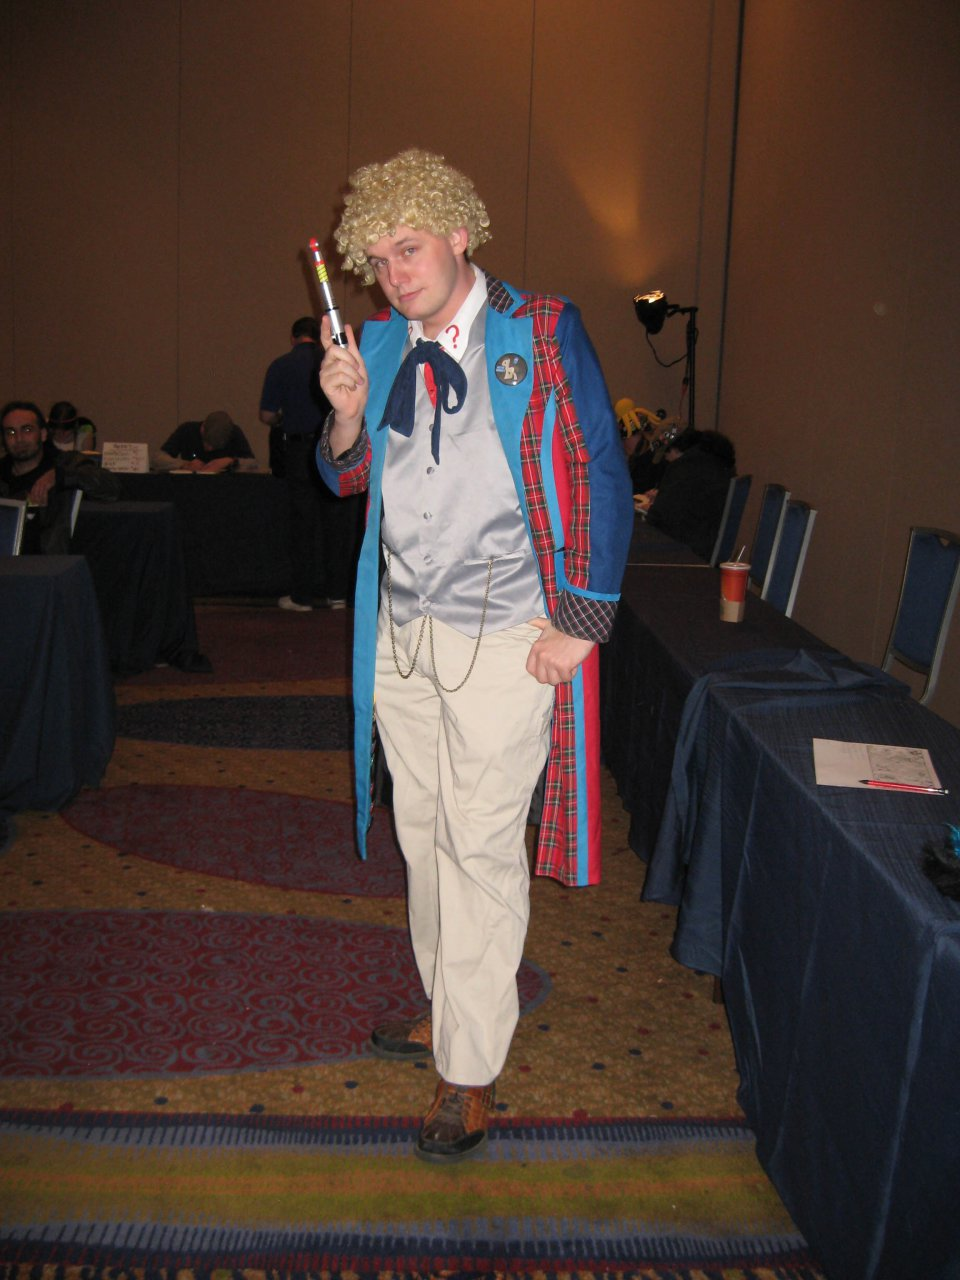 FWA 2012 - Day 2 - The 6th Doctor